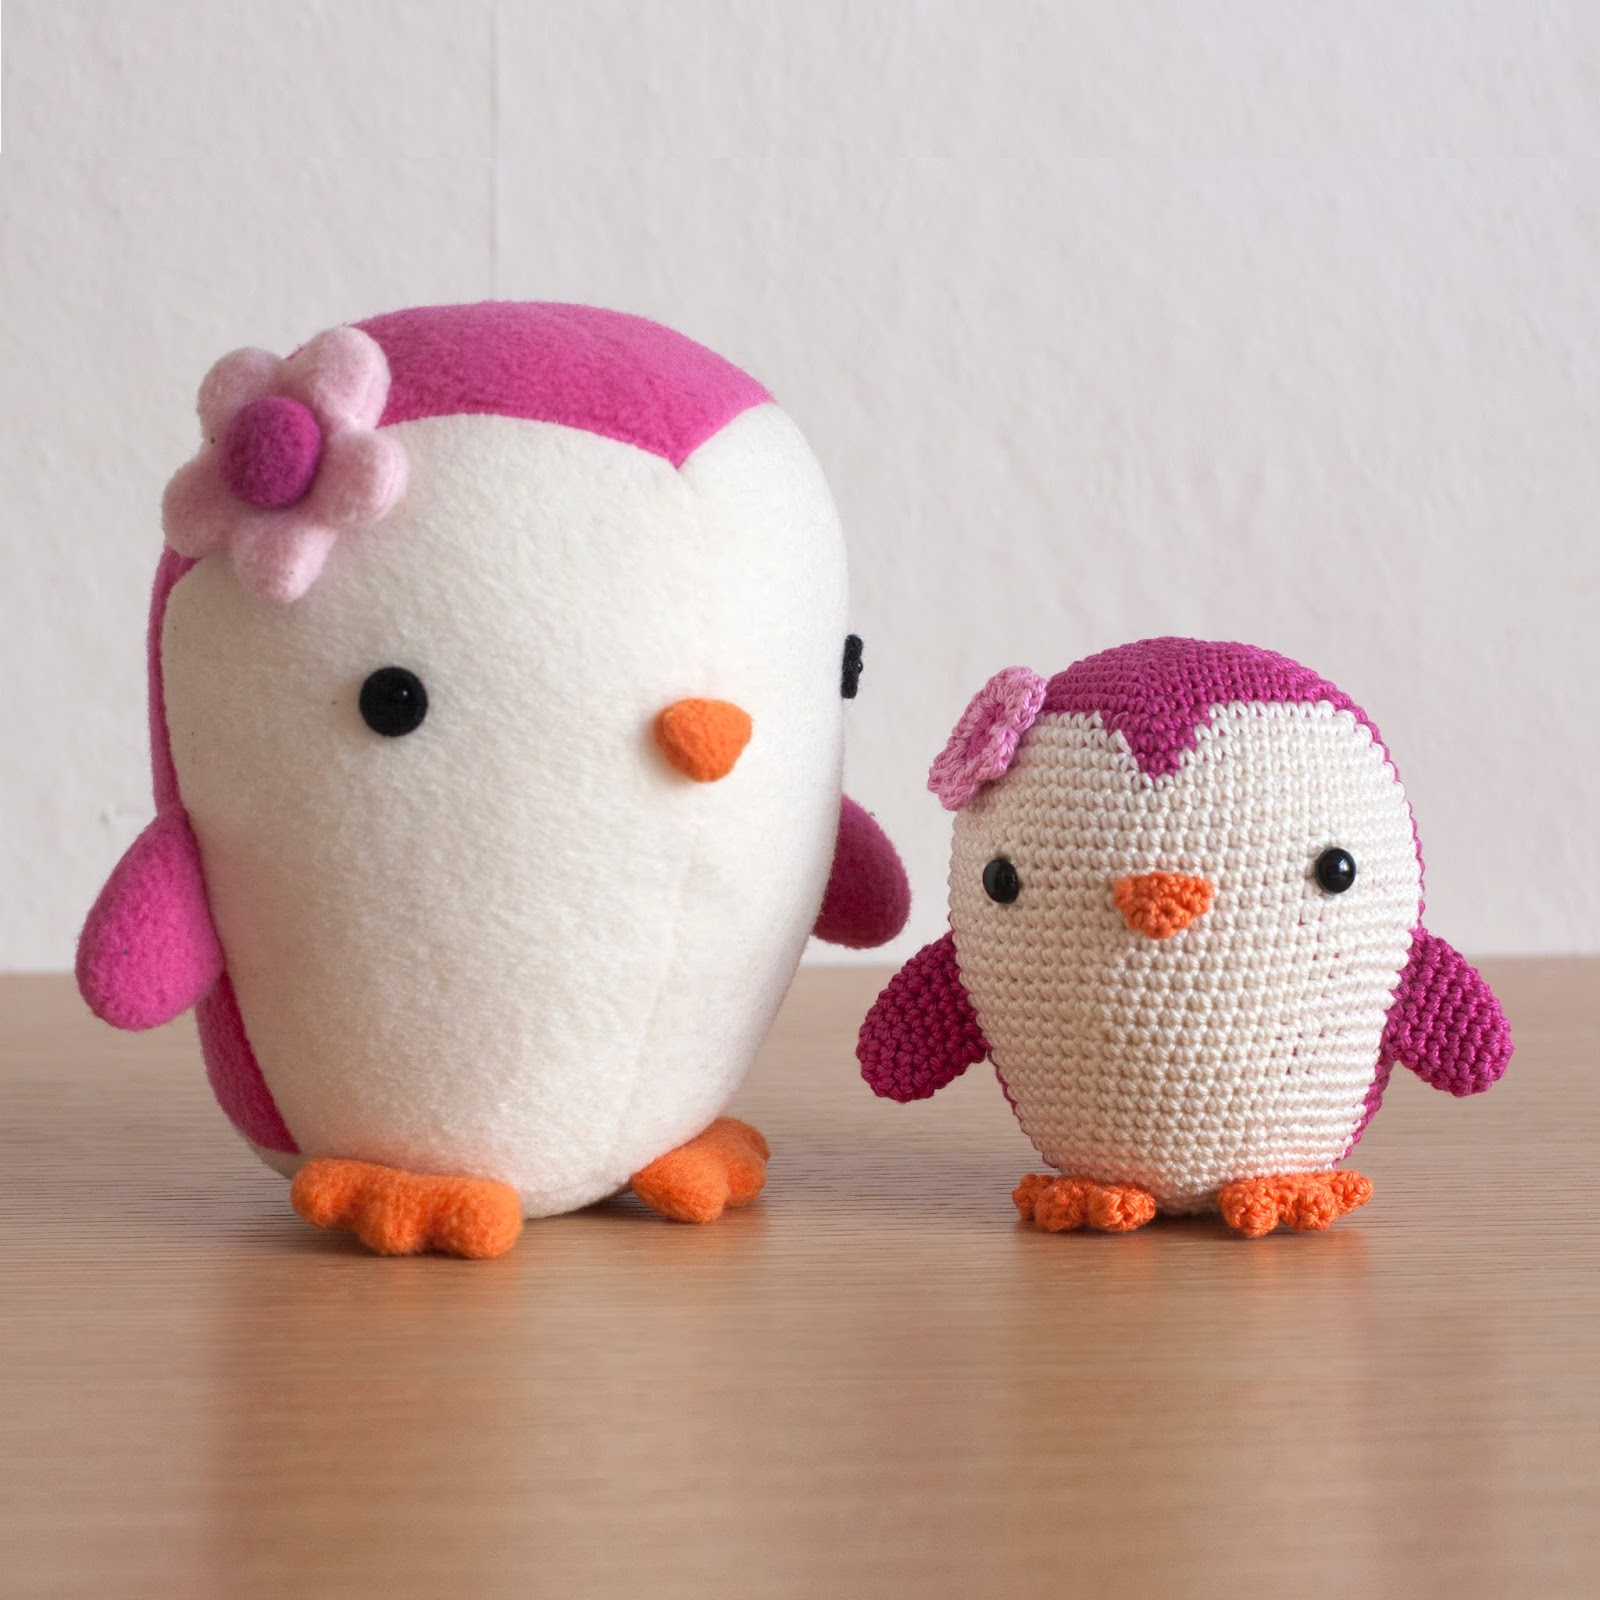 Amigurumi Penguin Pattern : Toy Patterns by DIY Fluffies : Penguin amigurumi crochet ...